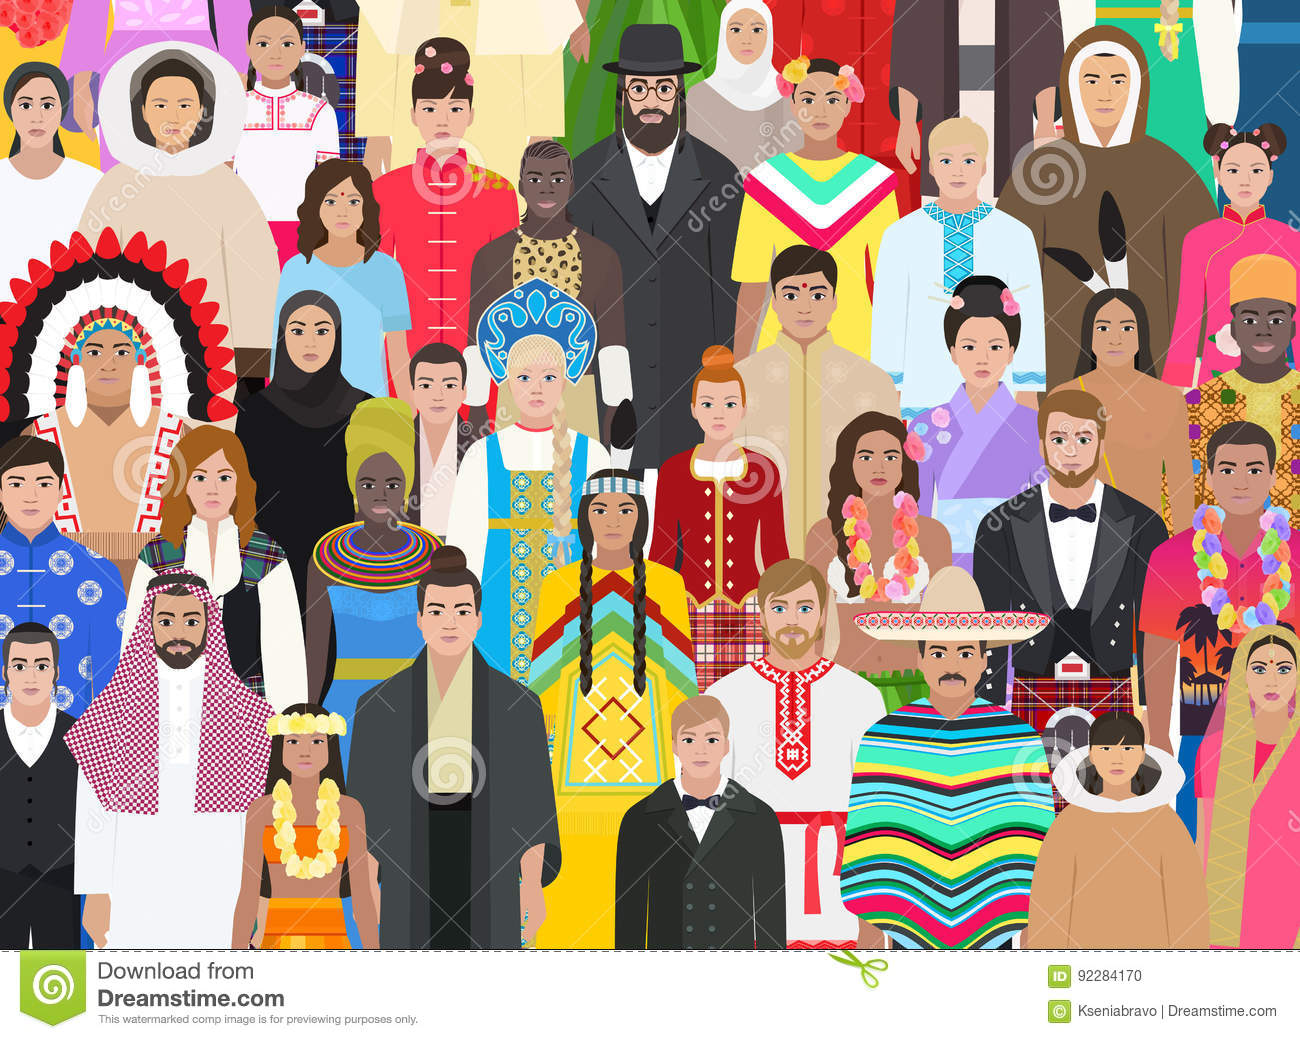 different nationalities essay I completely agree with this view and this will be shown in this essay by analysing the copiousness of the culture brought in by different nationalities and how a country can utilise distinct strengths of people from different races and nationalities.